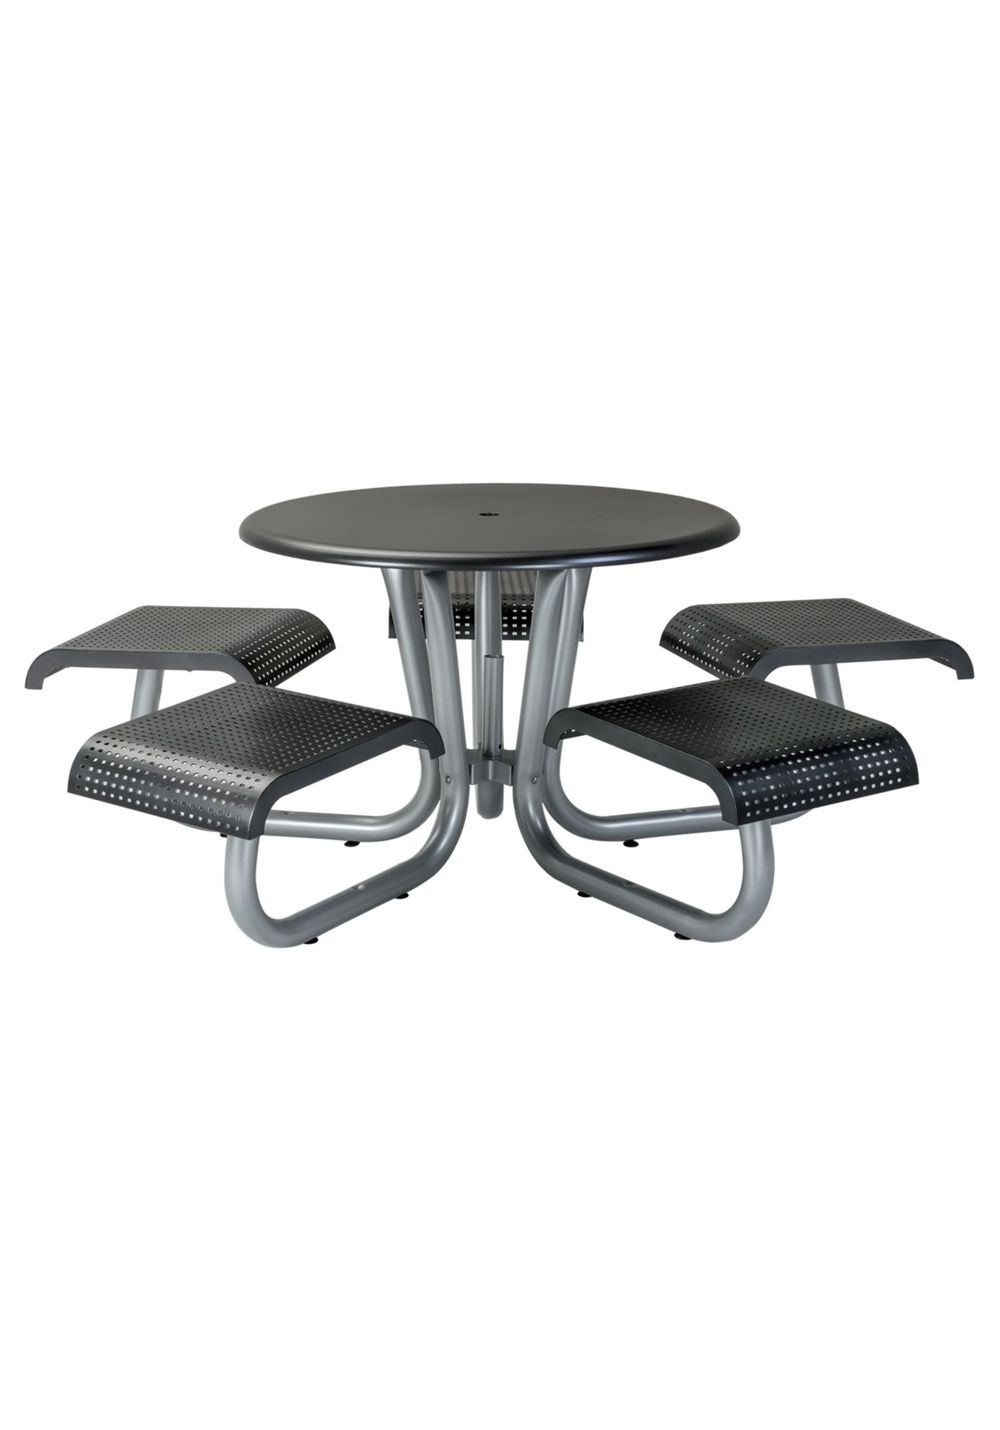 Tropitone Furniture - District Round Picnic Table with 5 Seats